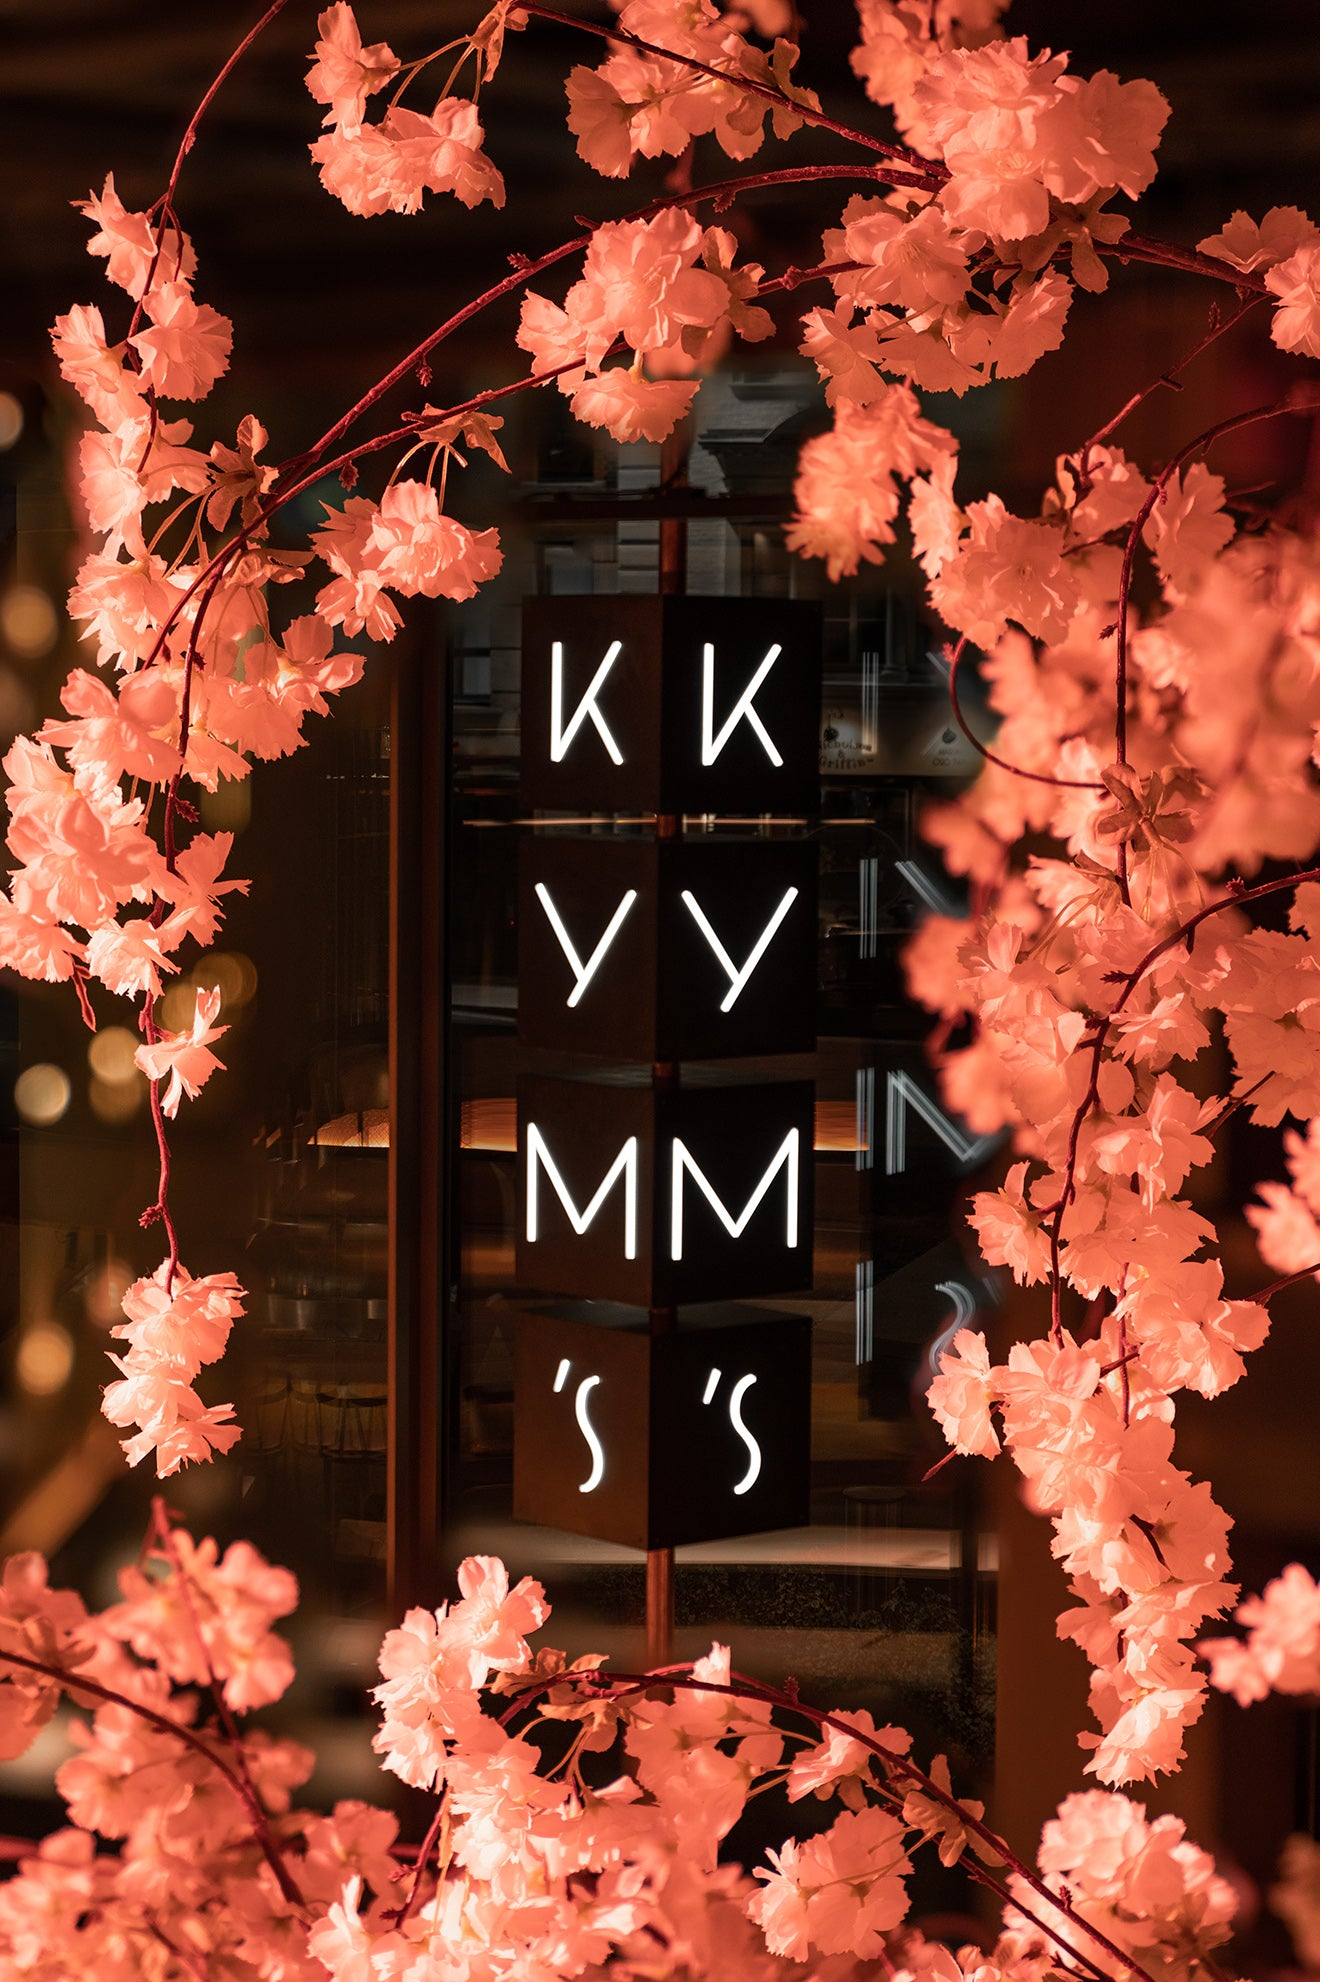 Kym's restaurant in London, designed by Michaelis Boyd Design for Andrew Wong